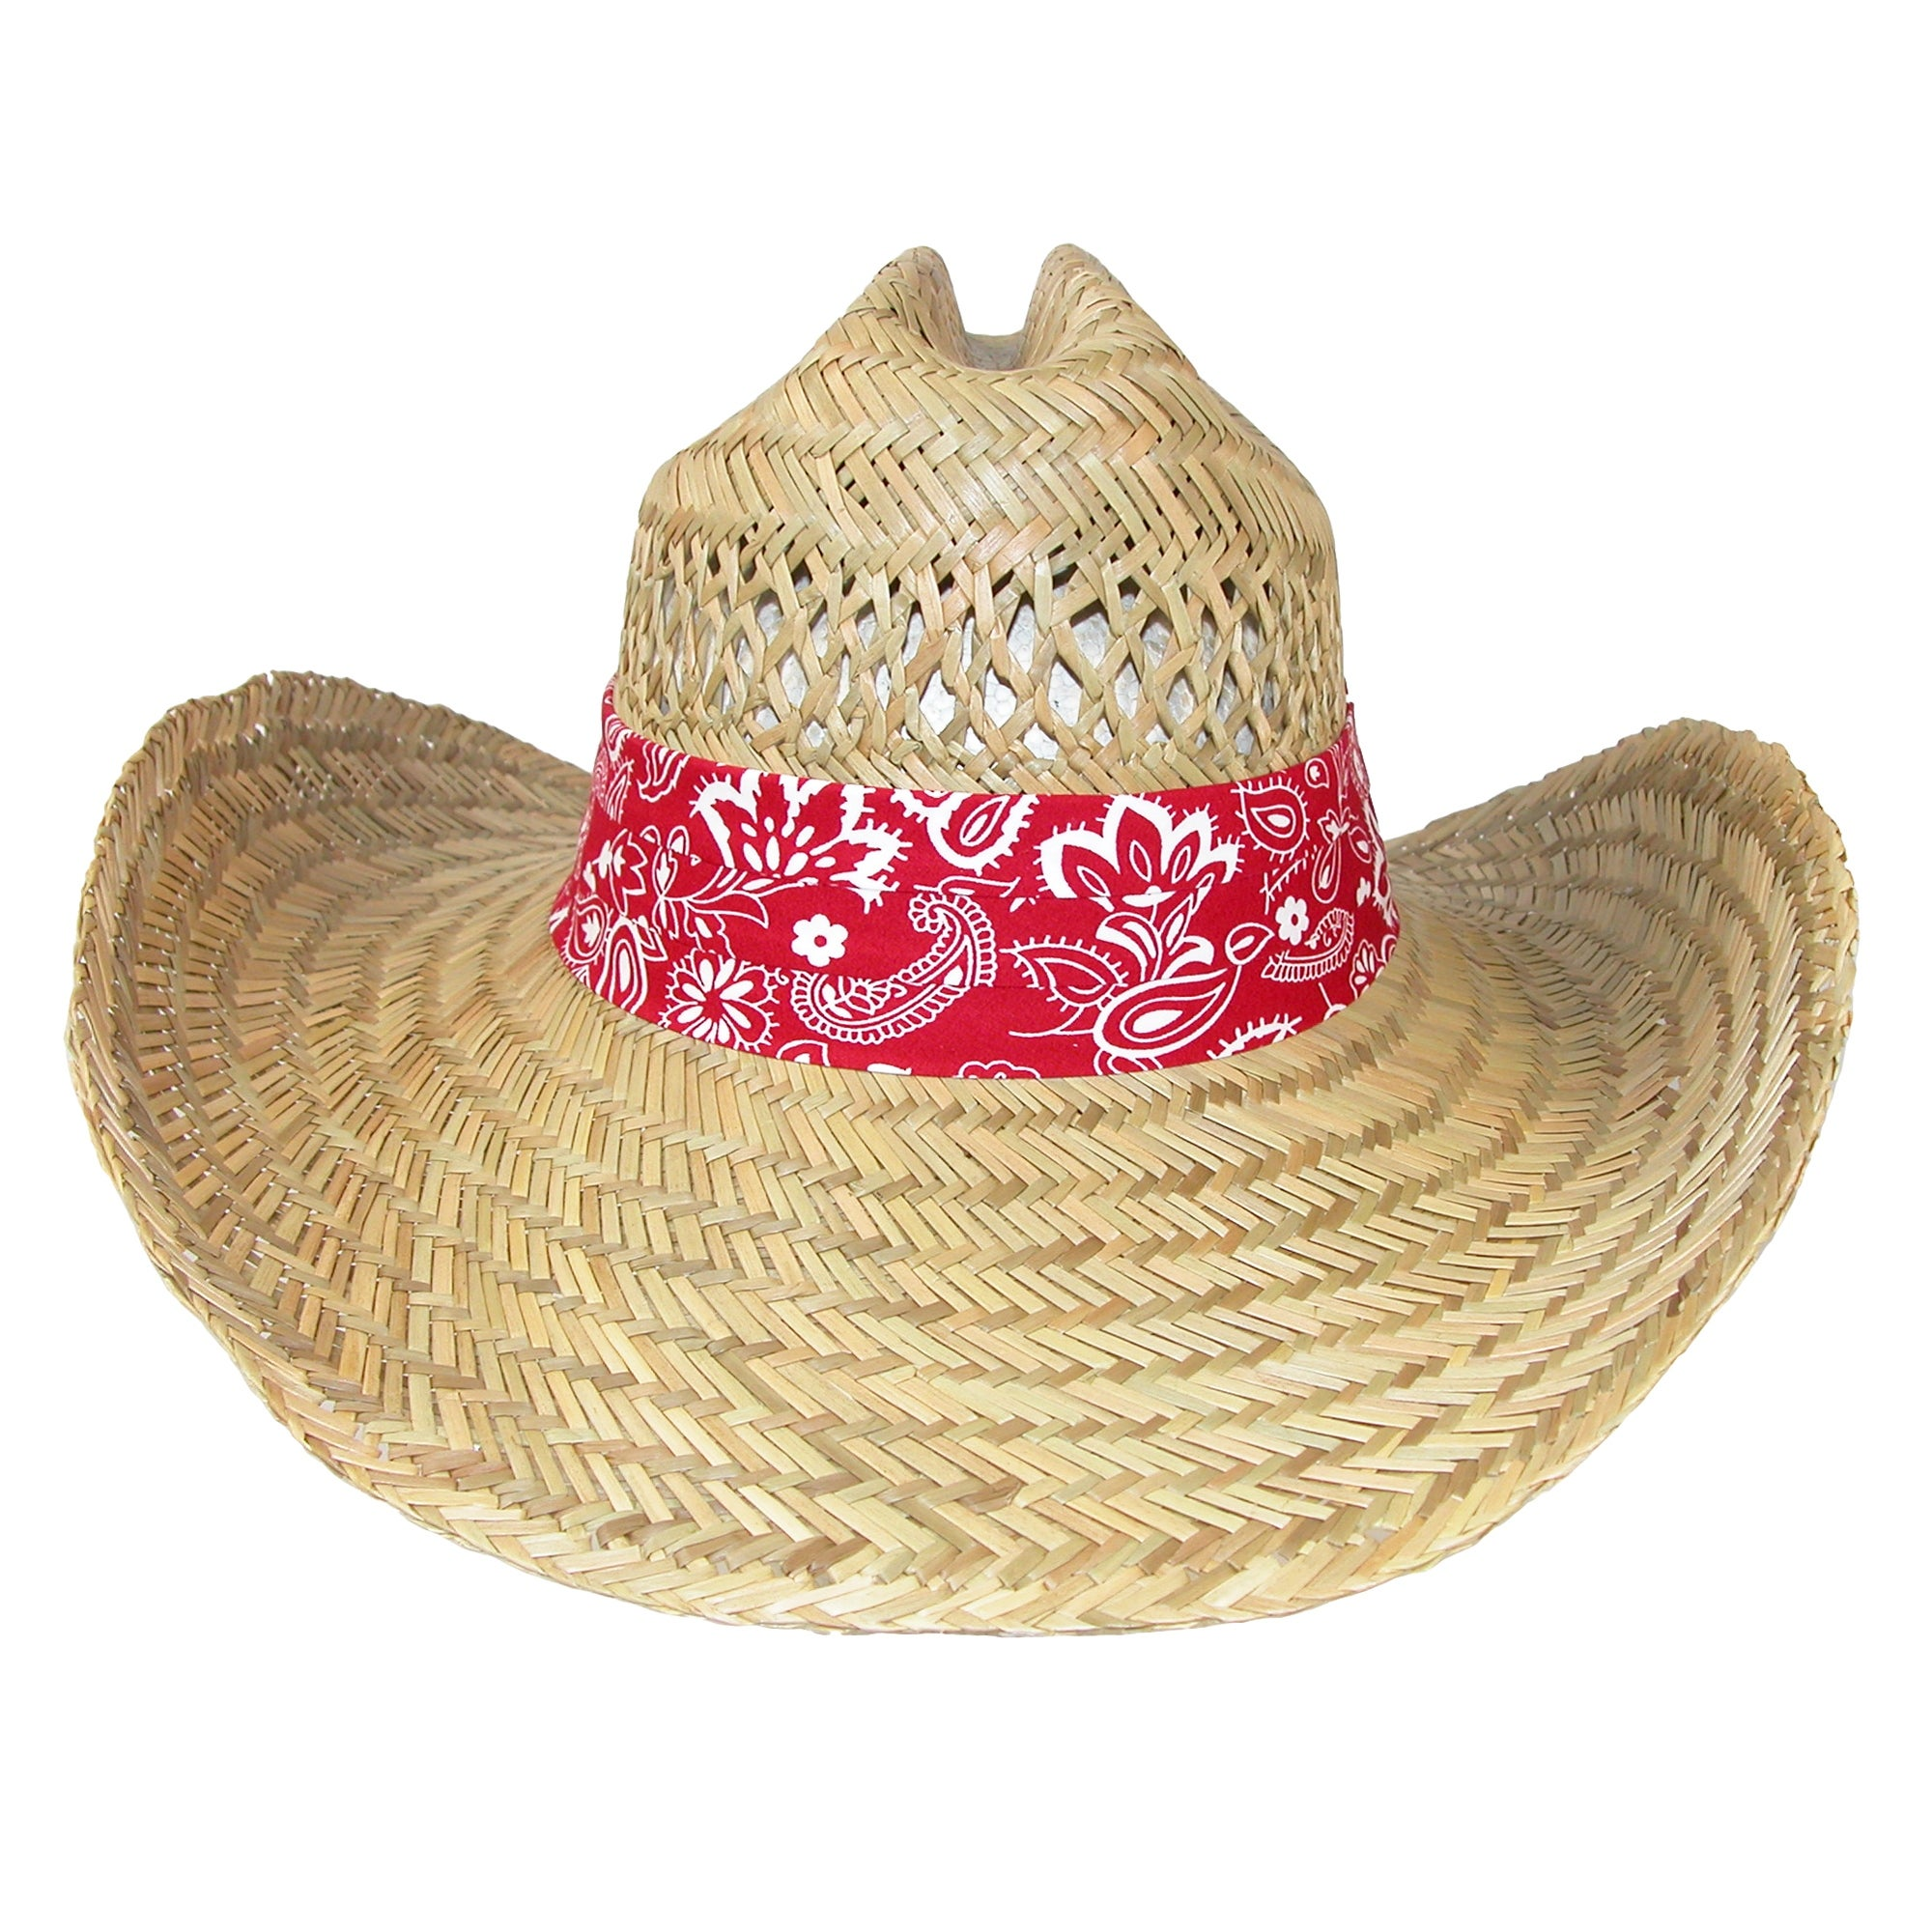 Western Hats - Where to Buy Western Hats at Village Hat Shop b30f3d77dde